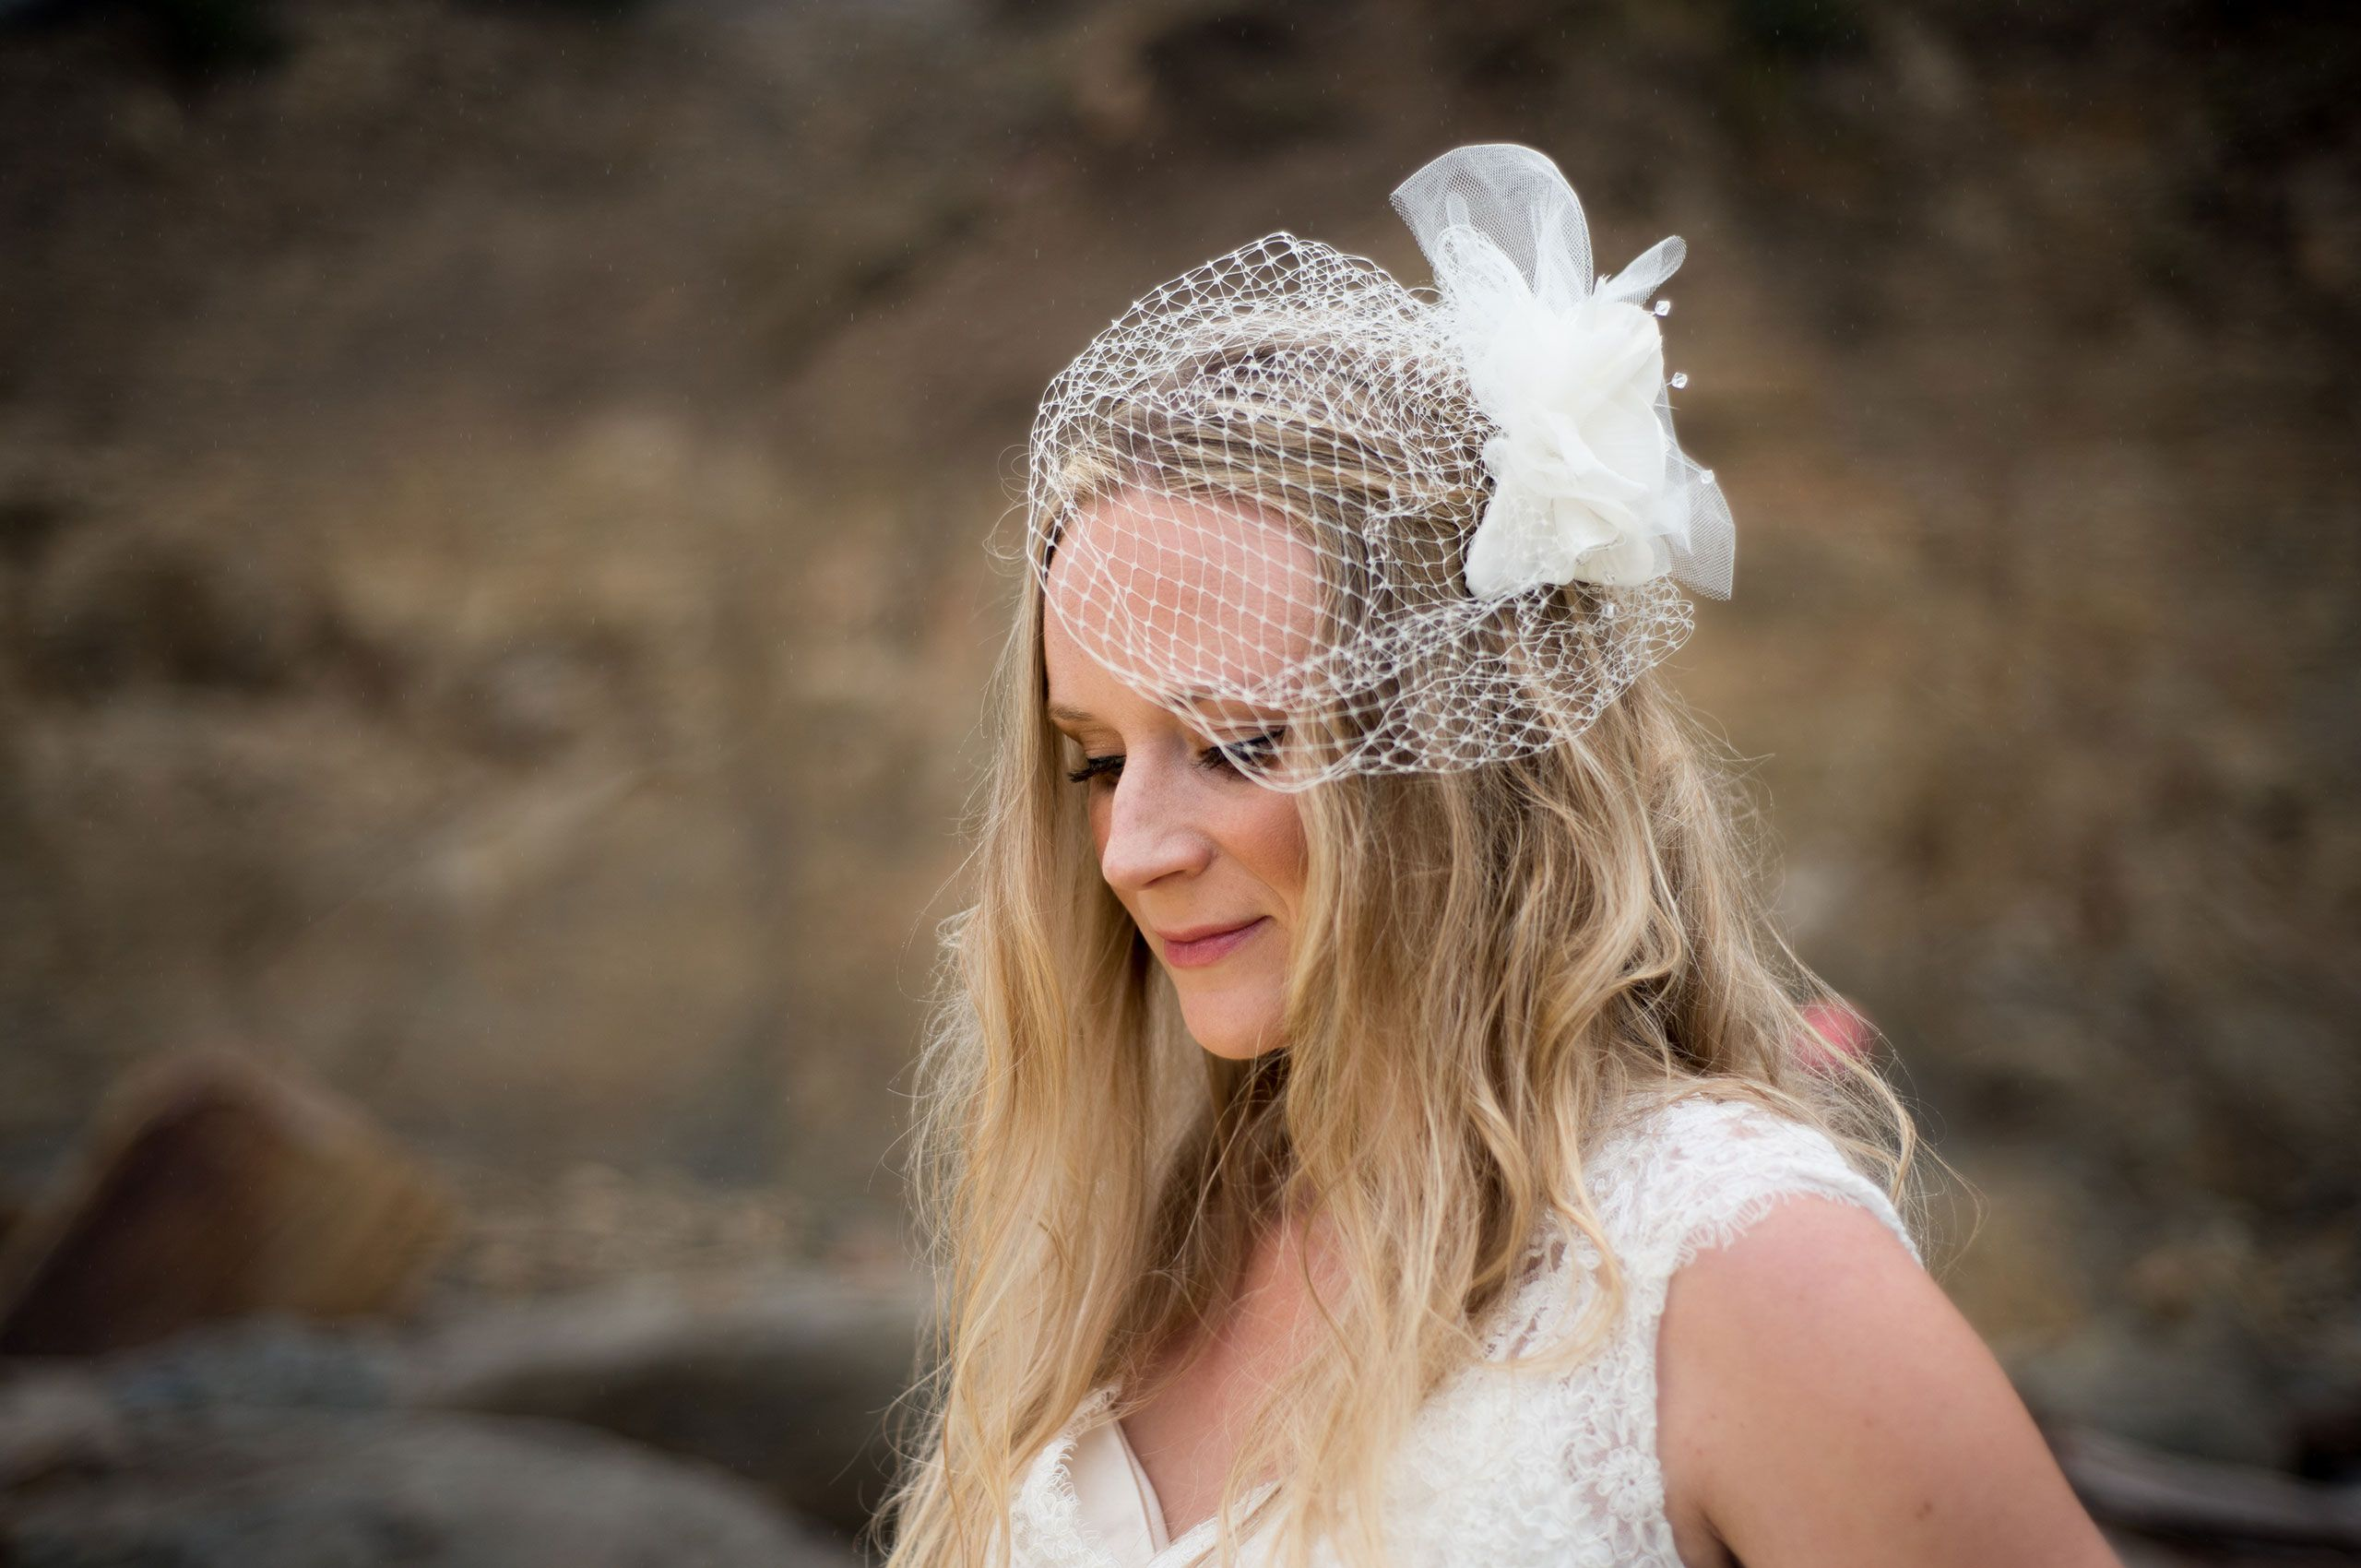 Oregon Coast bridal photo shoot